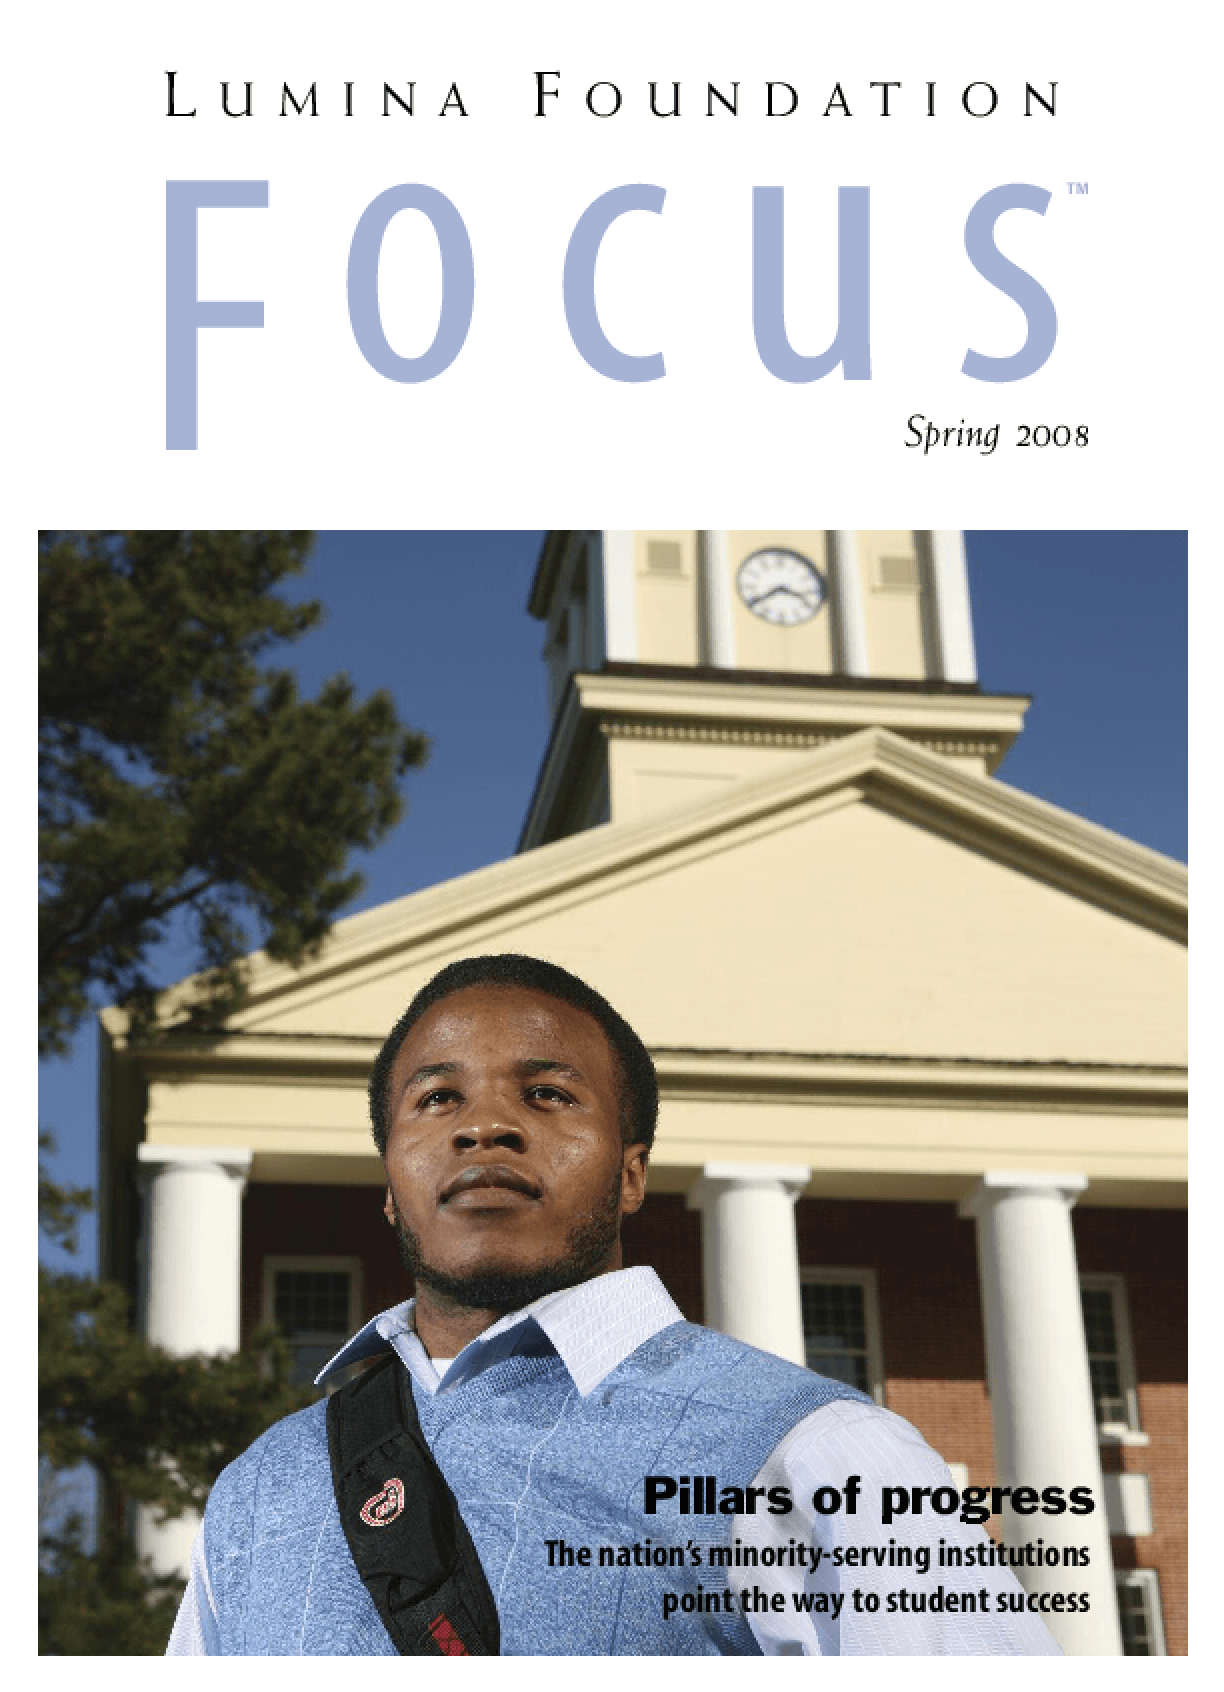 Pillars of Progress: The Nation's Minority-Serving Institutions Point the Way to Student Success